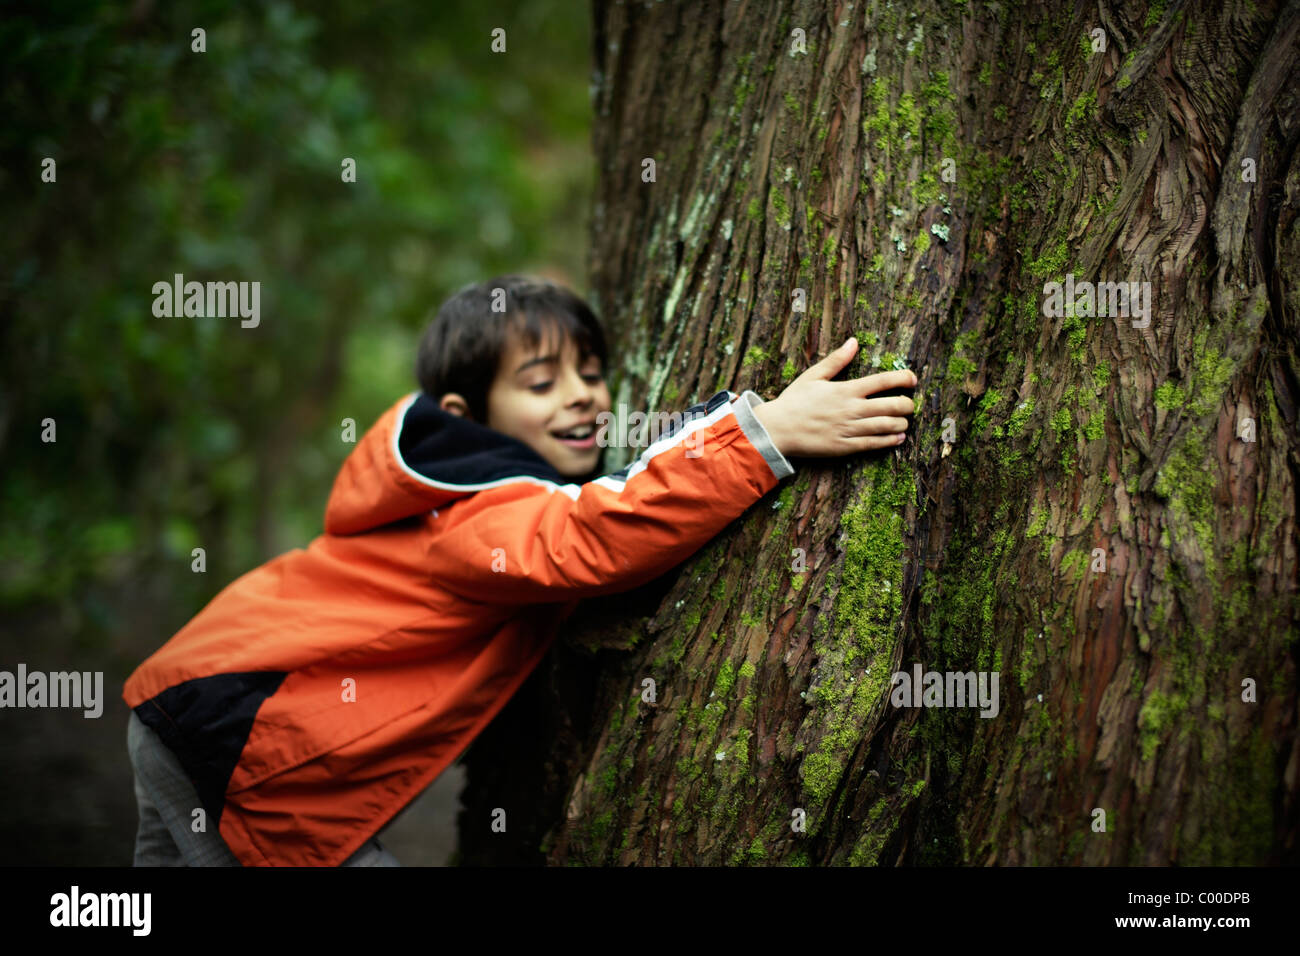 Tree love. - Stock Image